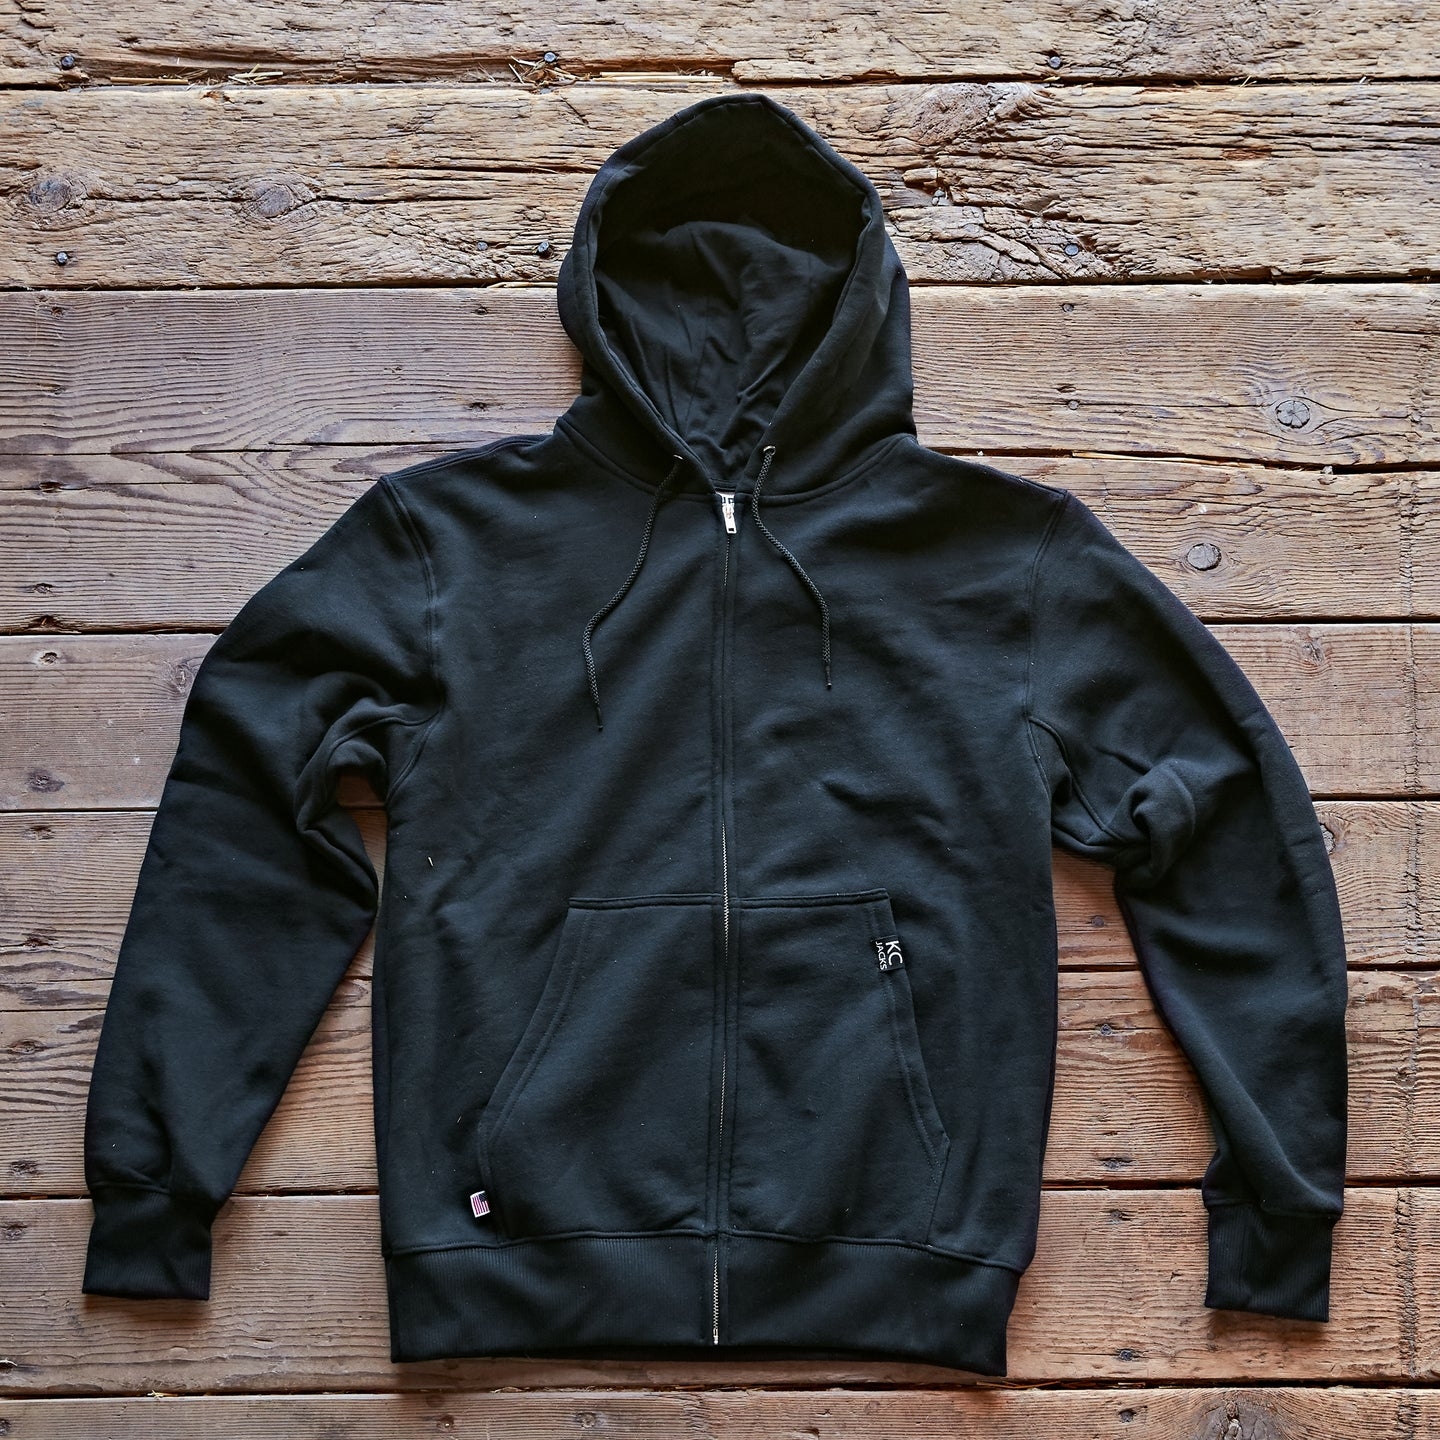 GC11 Full Zip Sweatshirt